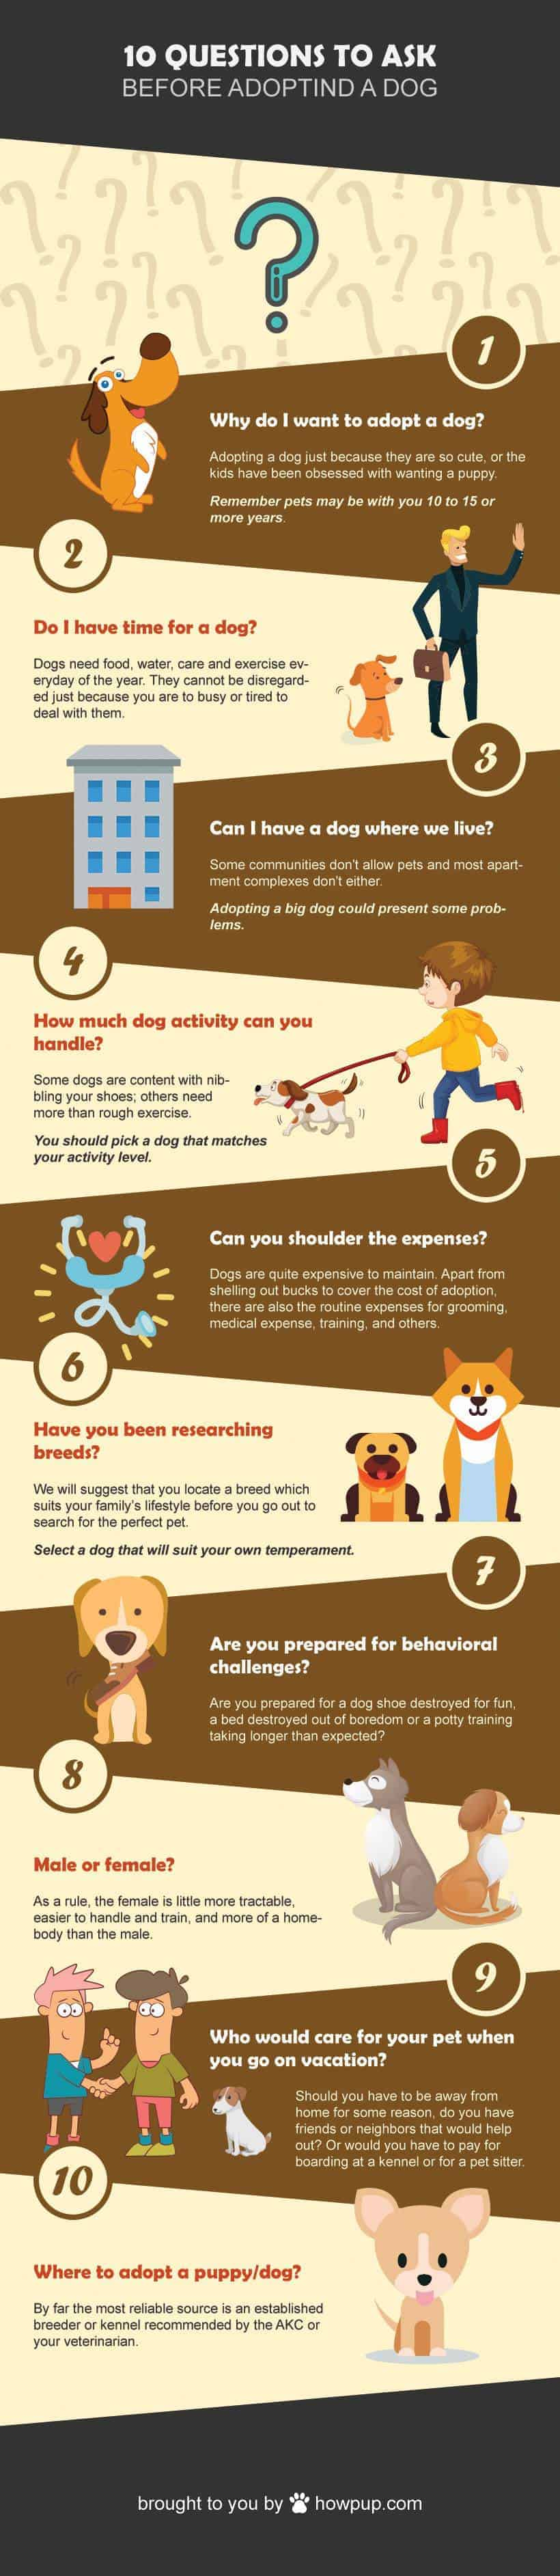 Adopting a dog guide courtesy howpup.com